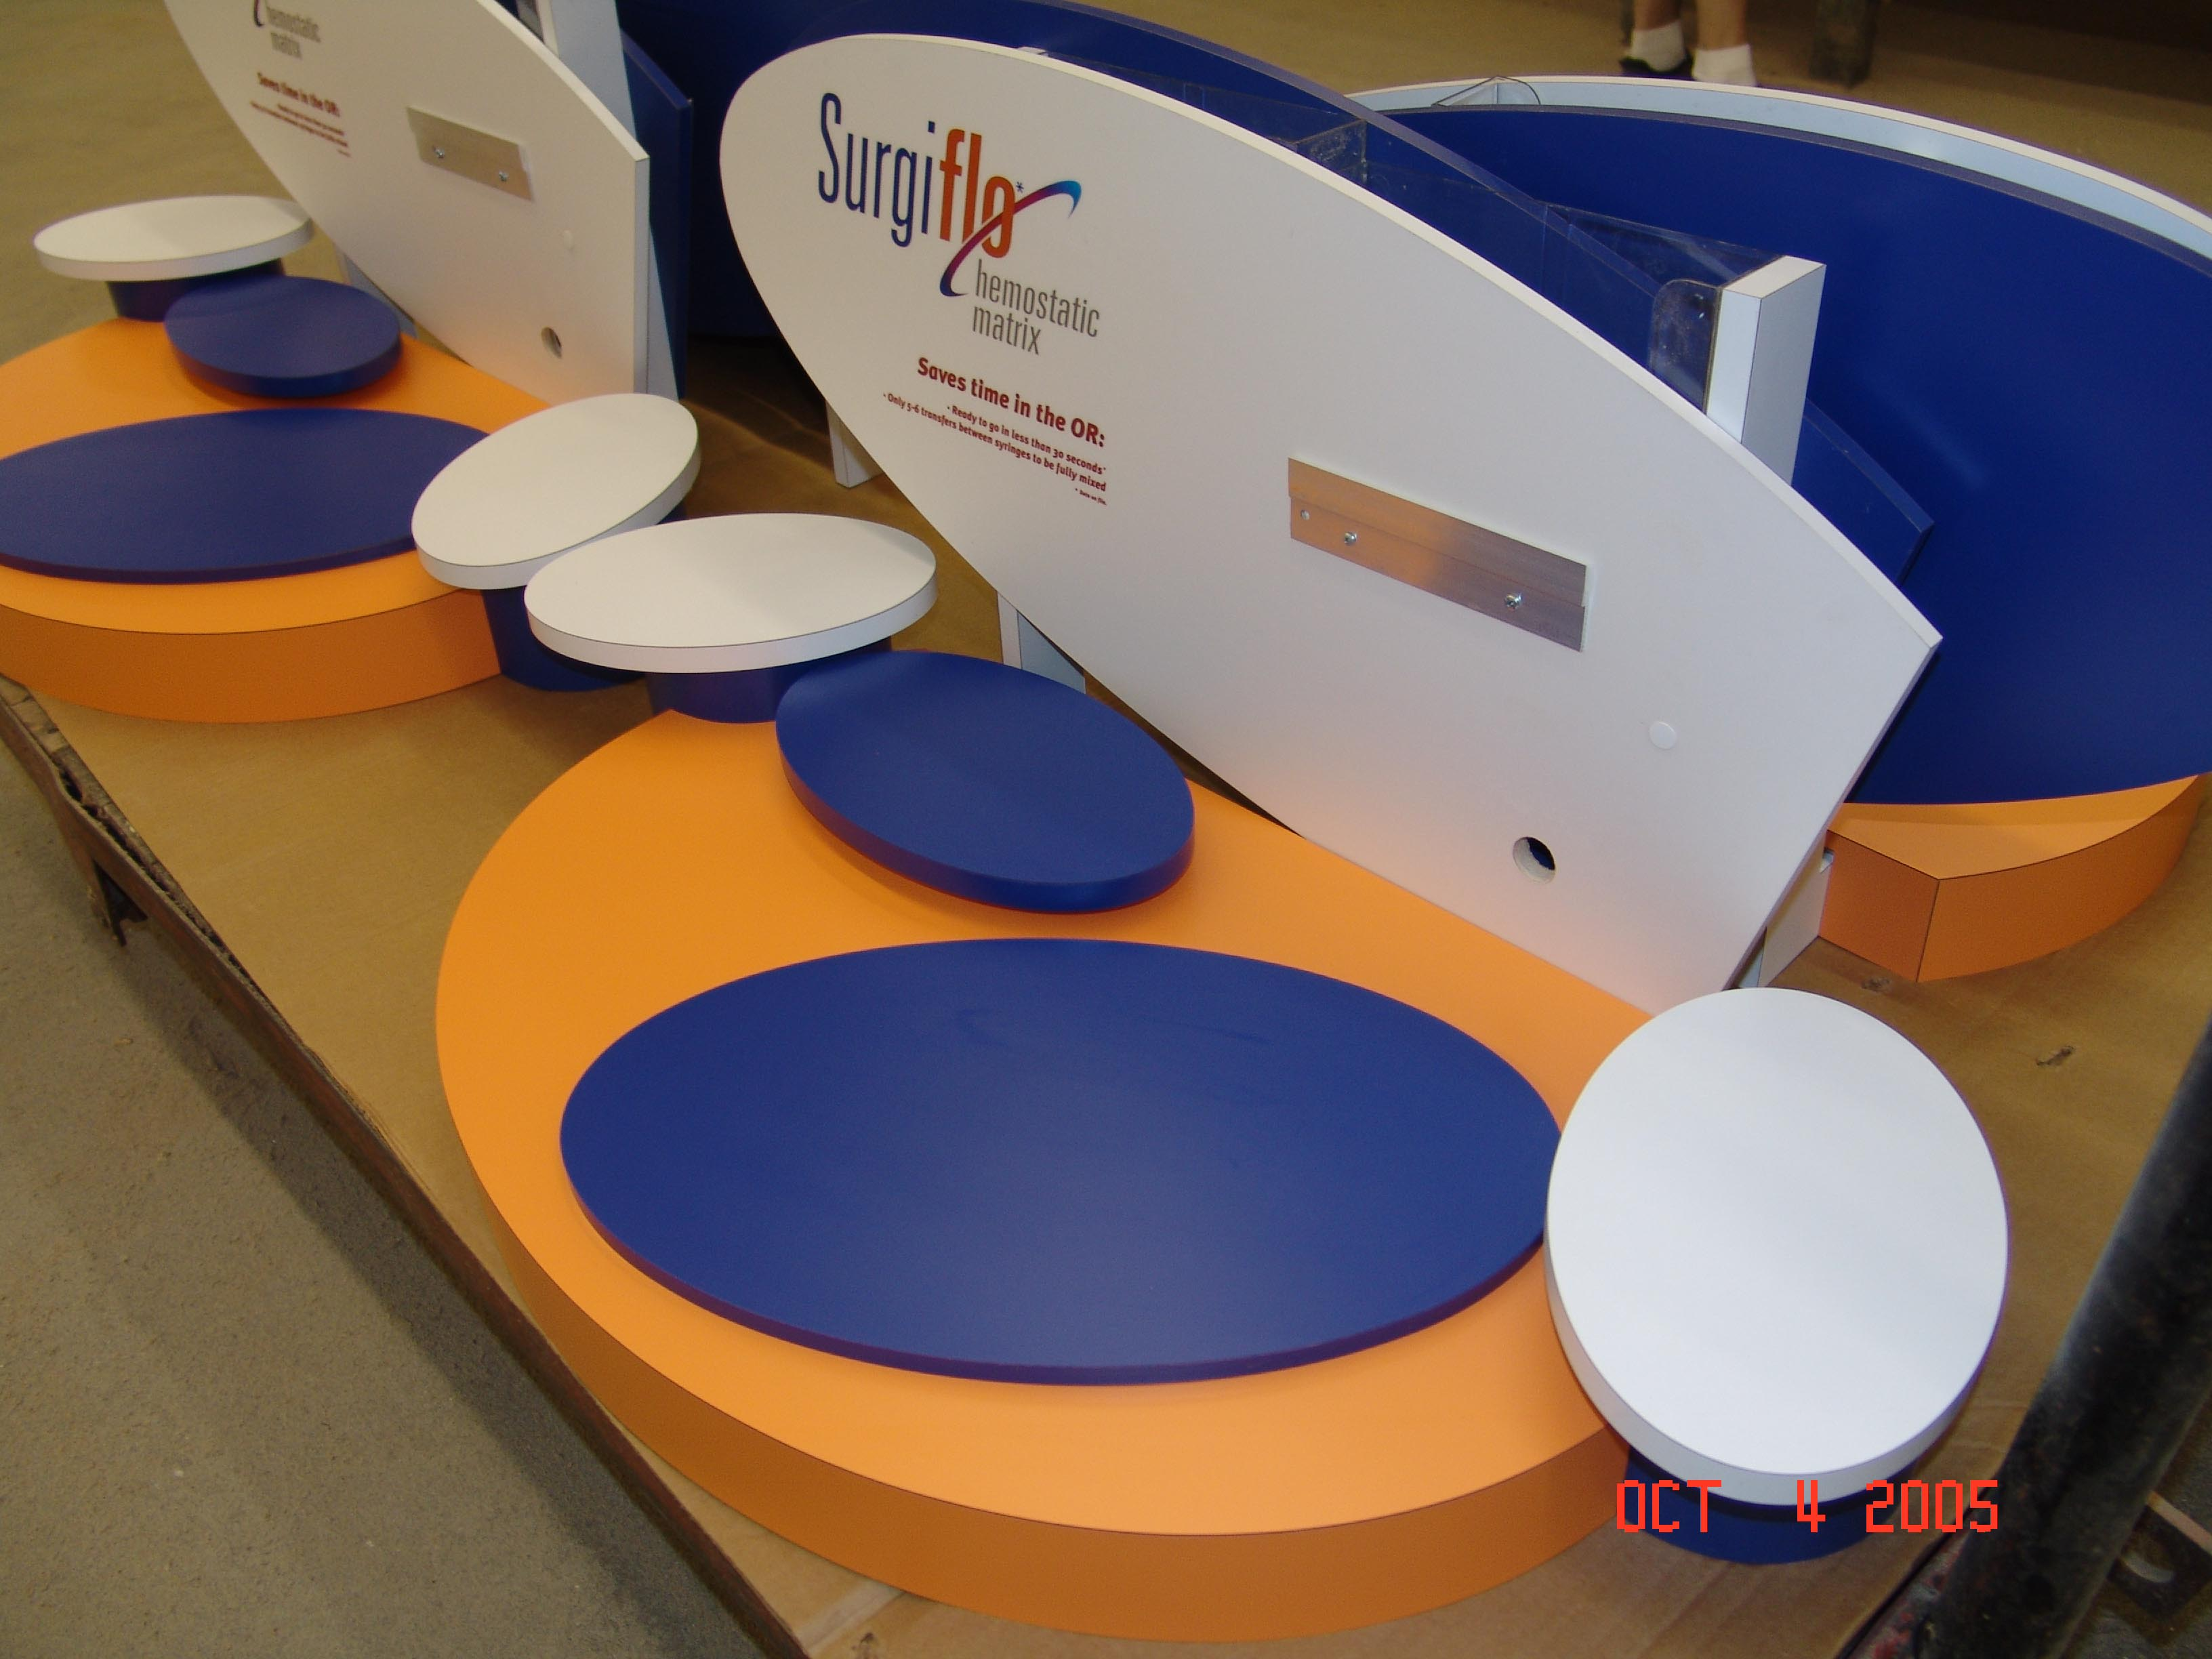 Trade show counter display, counter display, display riser (1)